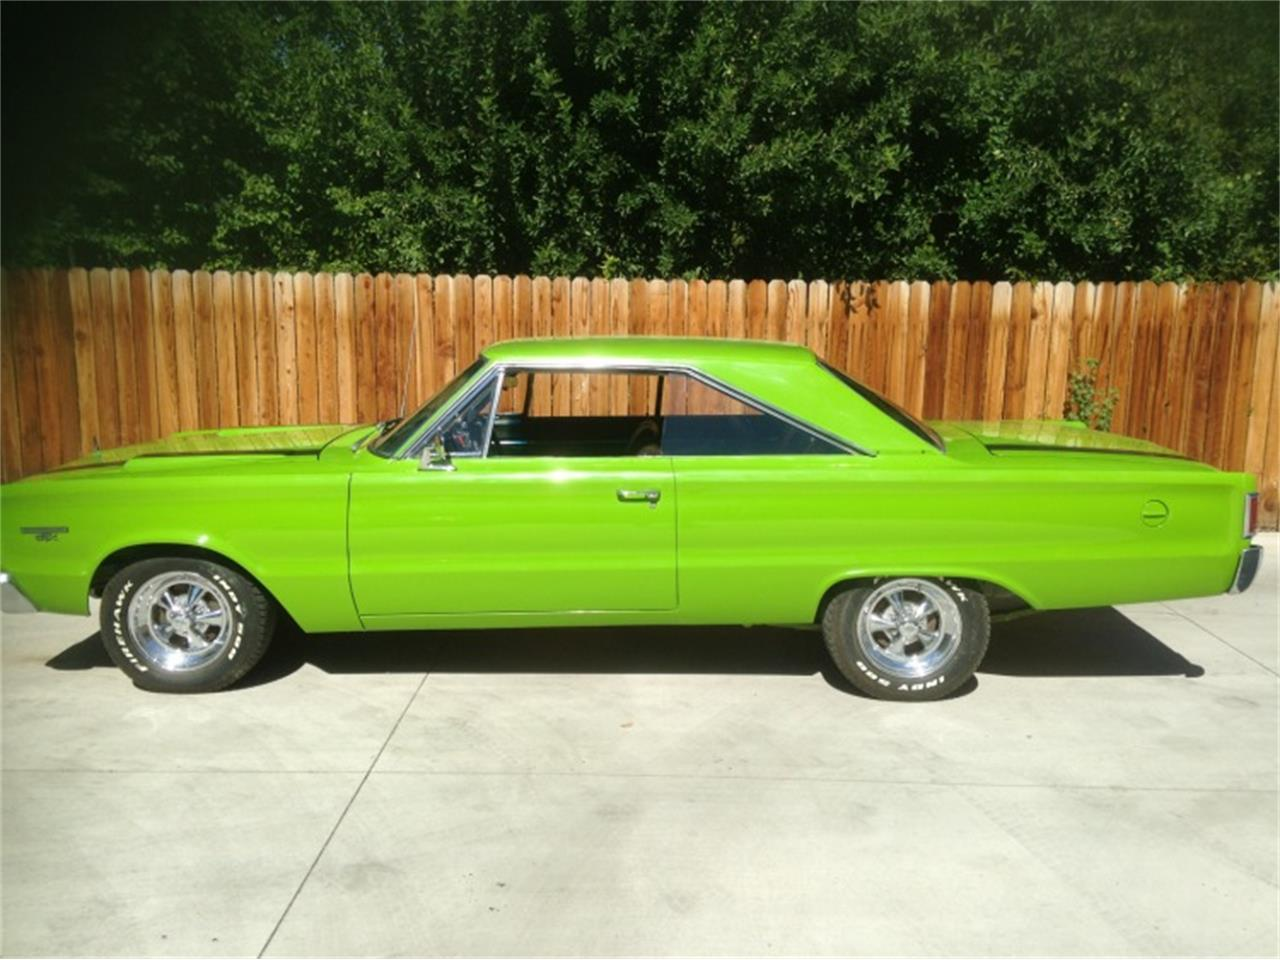 Classic Plymouth For Sale On Pg 68 Sort Asking 69 Fury Radiator 1967 Belvedere